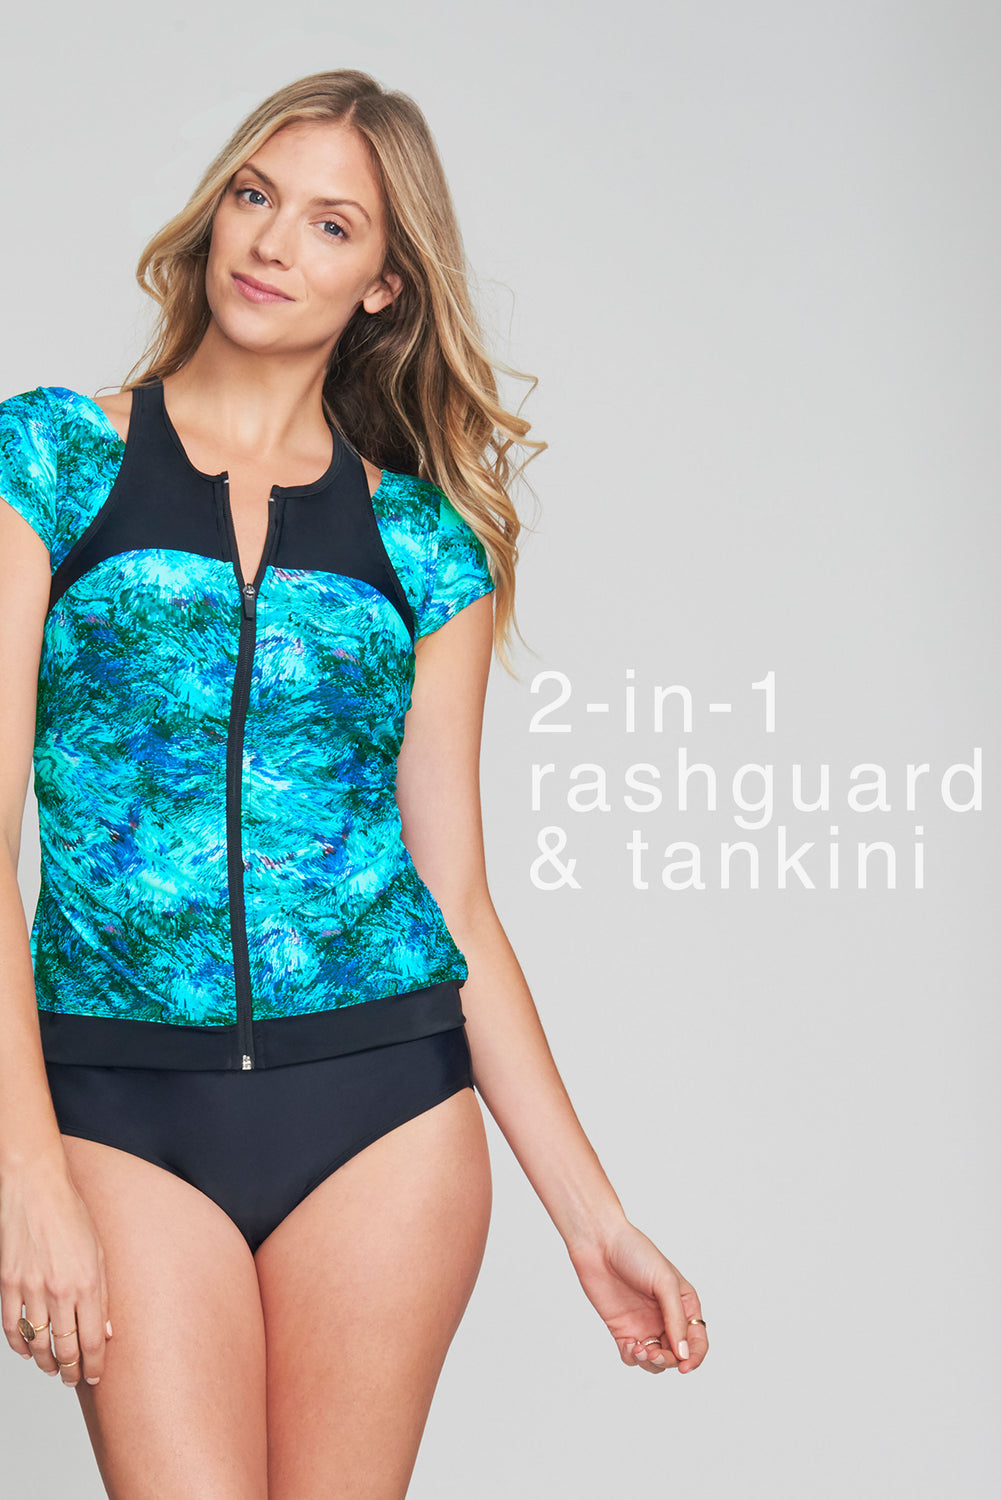 ZIP FRONT LAYERED RASHGUARD TANKINI IN AMETHYST CRYSTAL BY MAZU SWIM